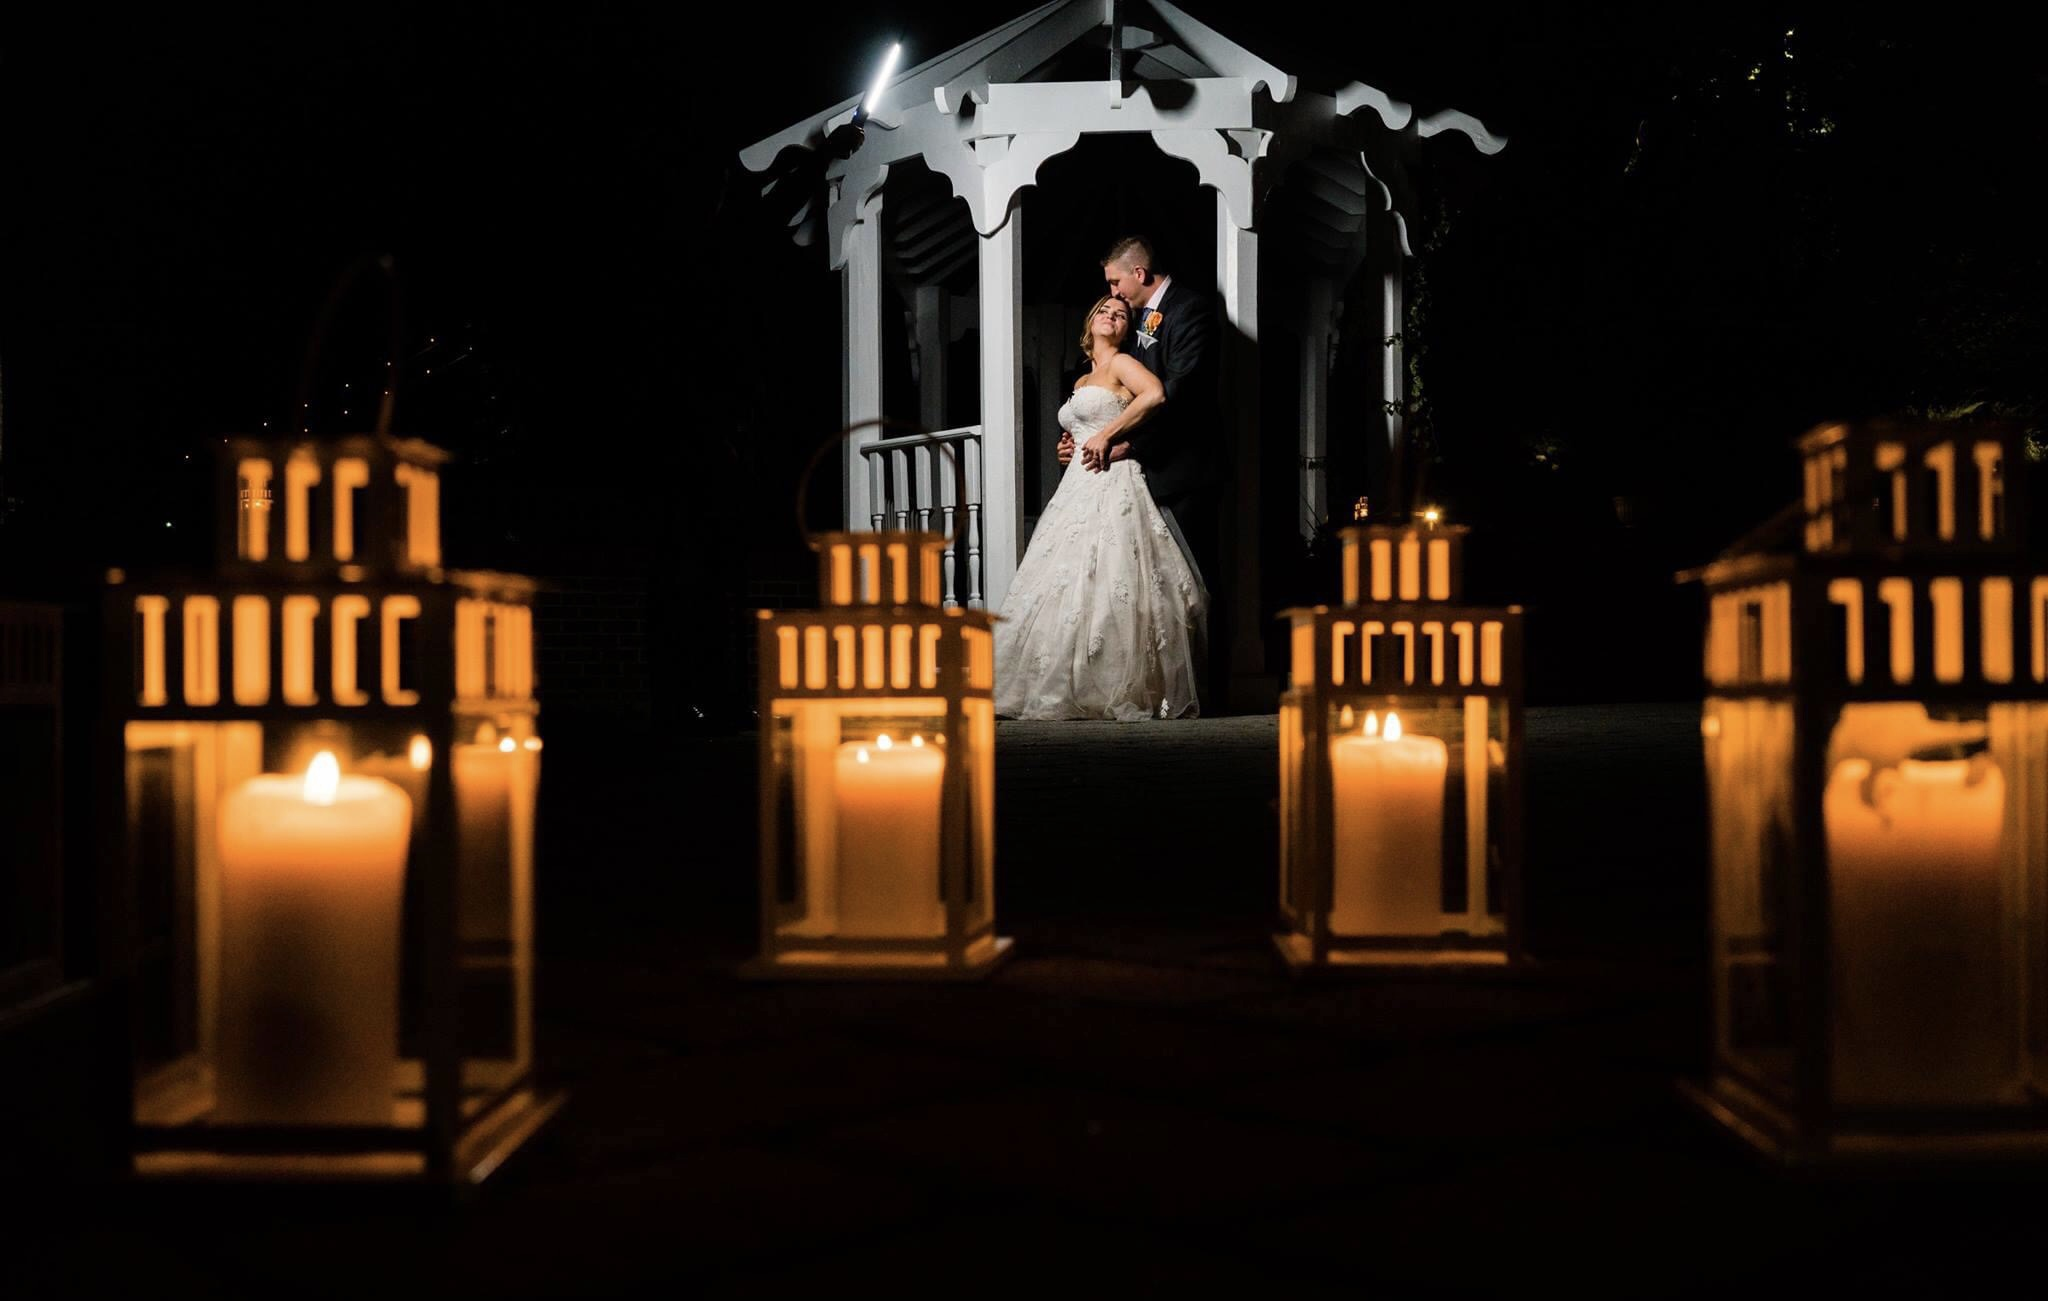 Couple in gazebo with foreground candles - photo by MD photo films